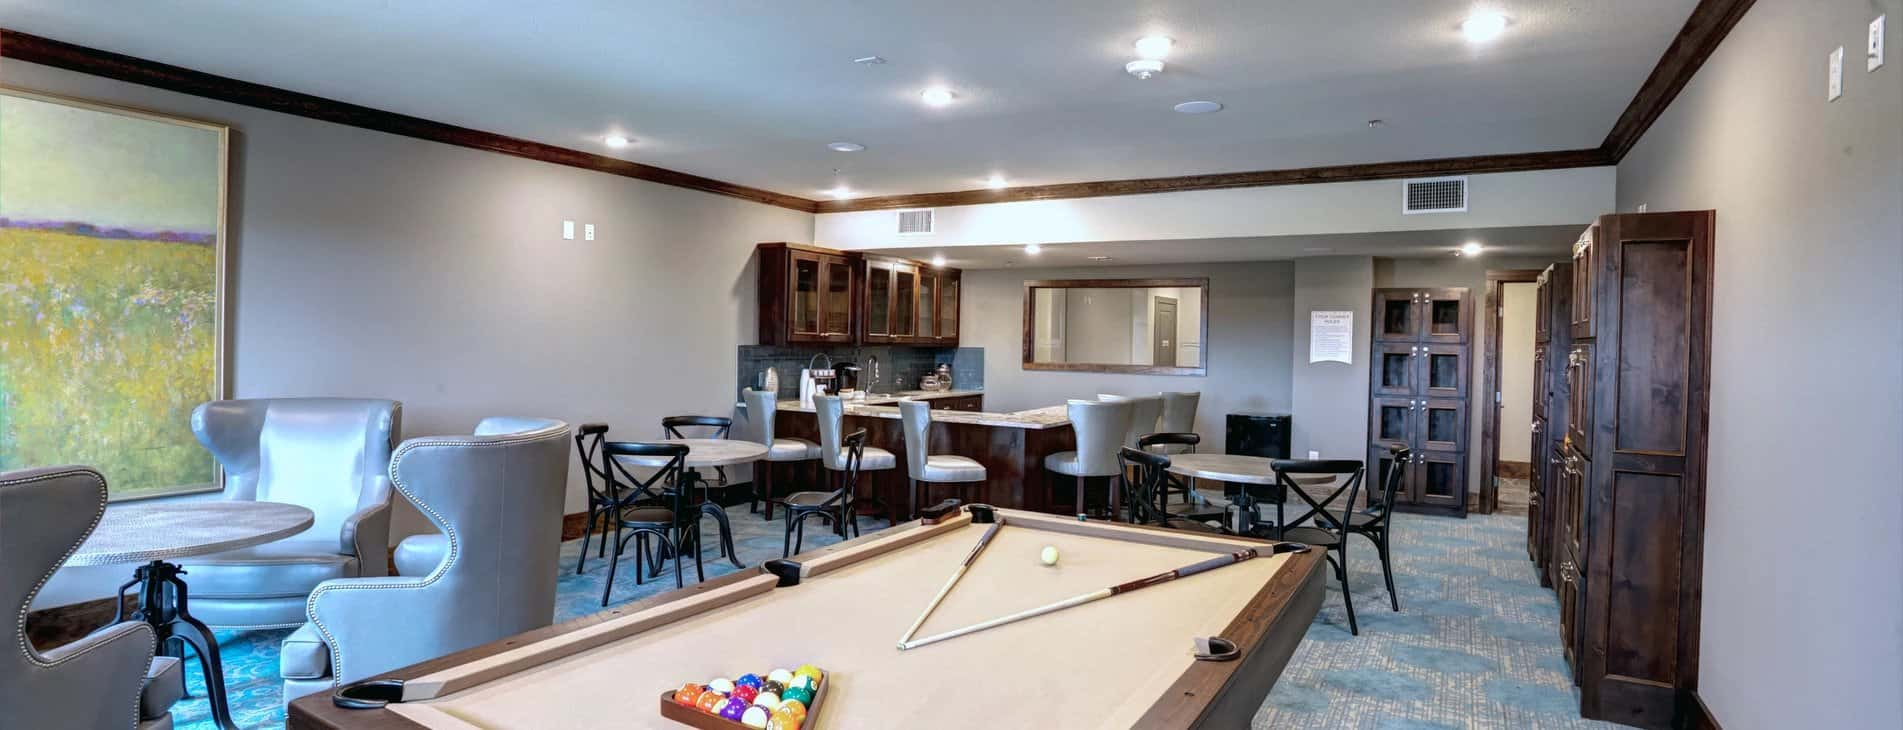 Billiard room design by Larkspur At Twin Creeks